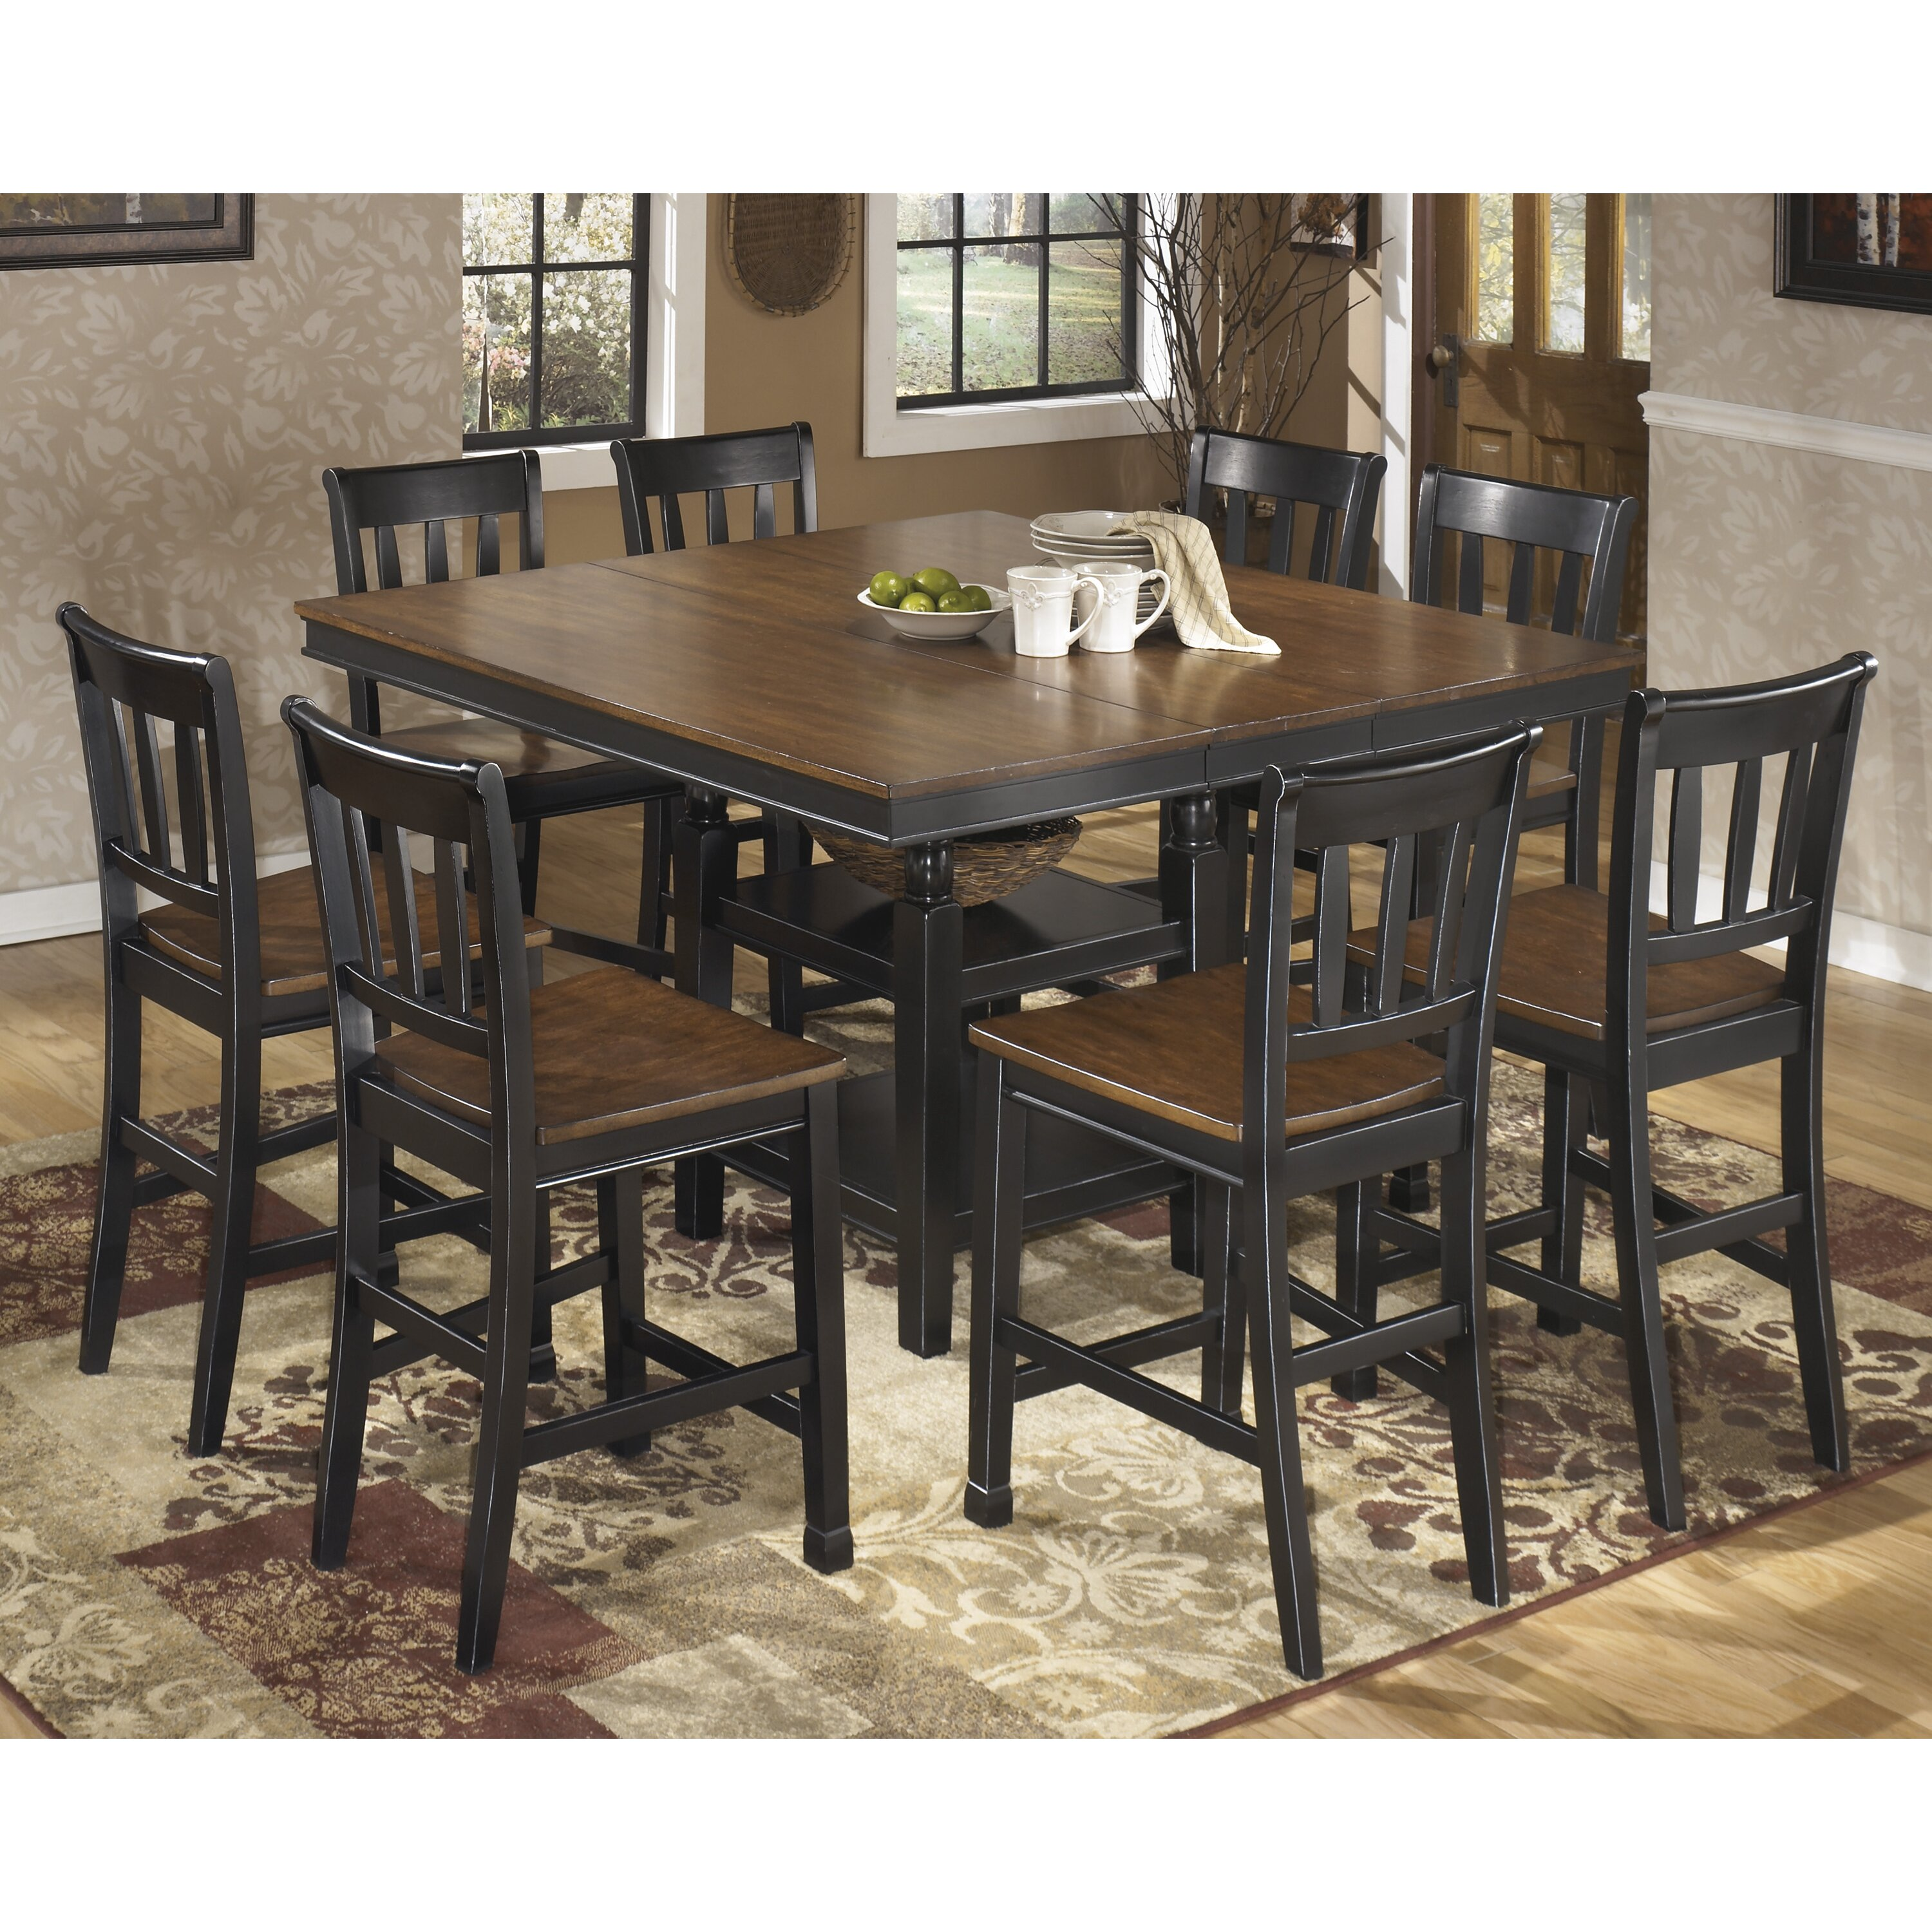 Andover mills velma counter height extendable dining table for Counter height extendable dining table